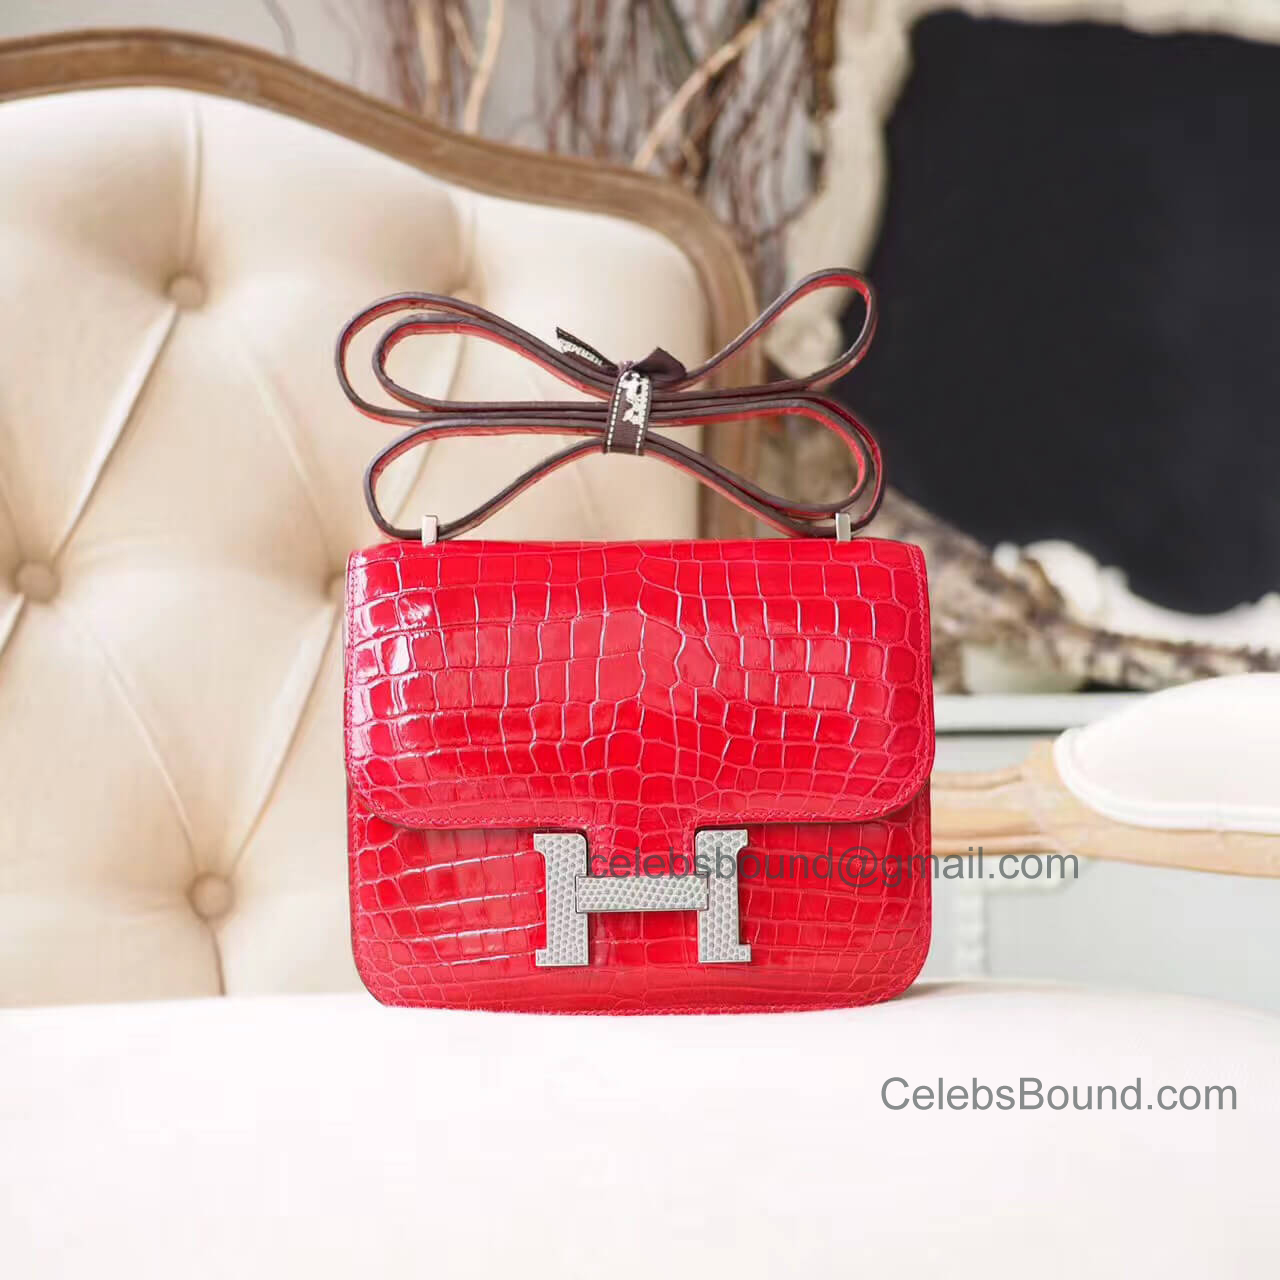 Hermes Mini Constance 18 in 9m Sanguine Shiny Nile Croc Lizard Buckle GHW